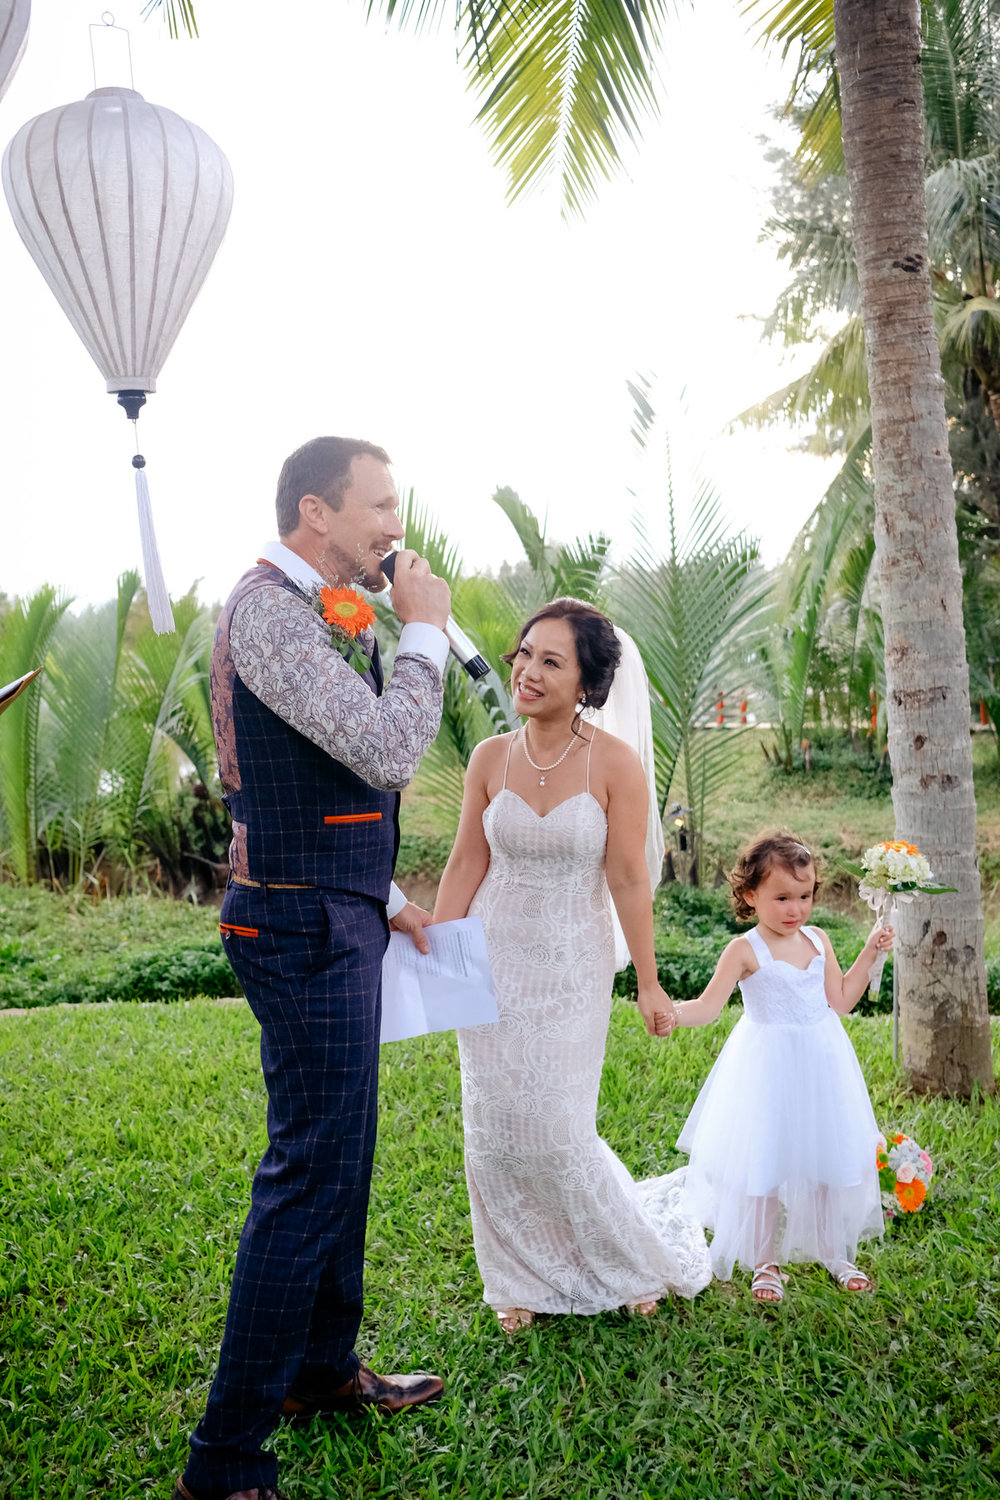 Hoi An-Vietnam-Wedding-Photography-62.jpg